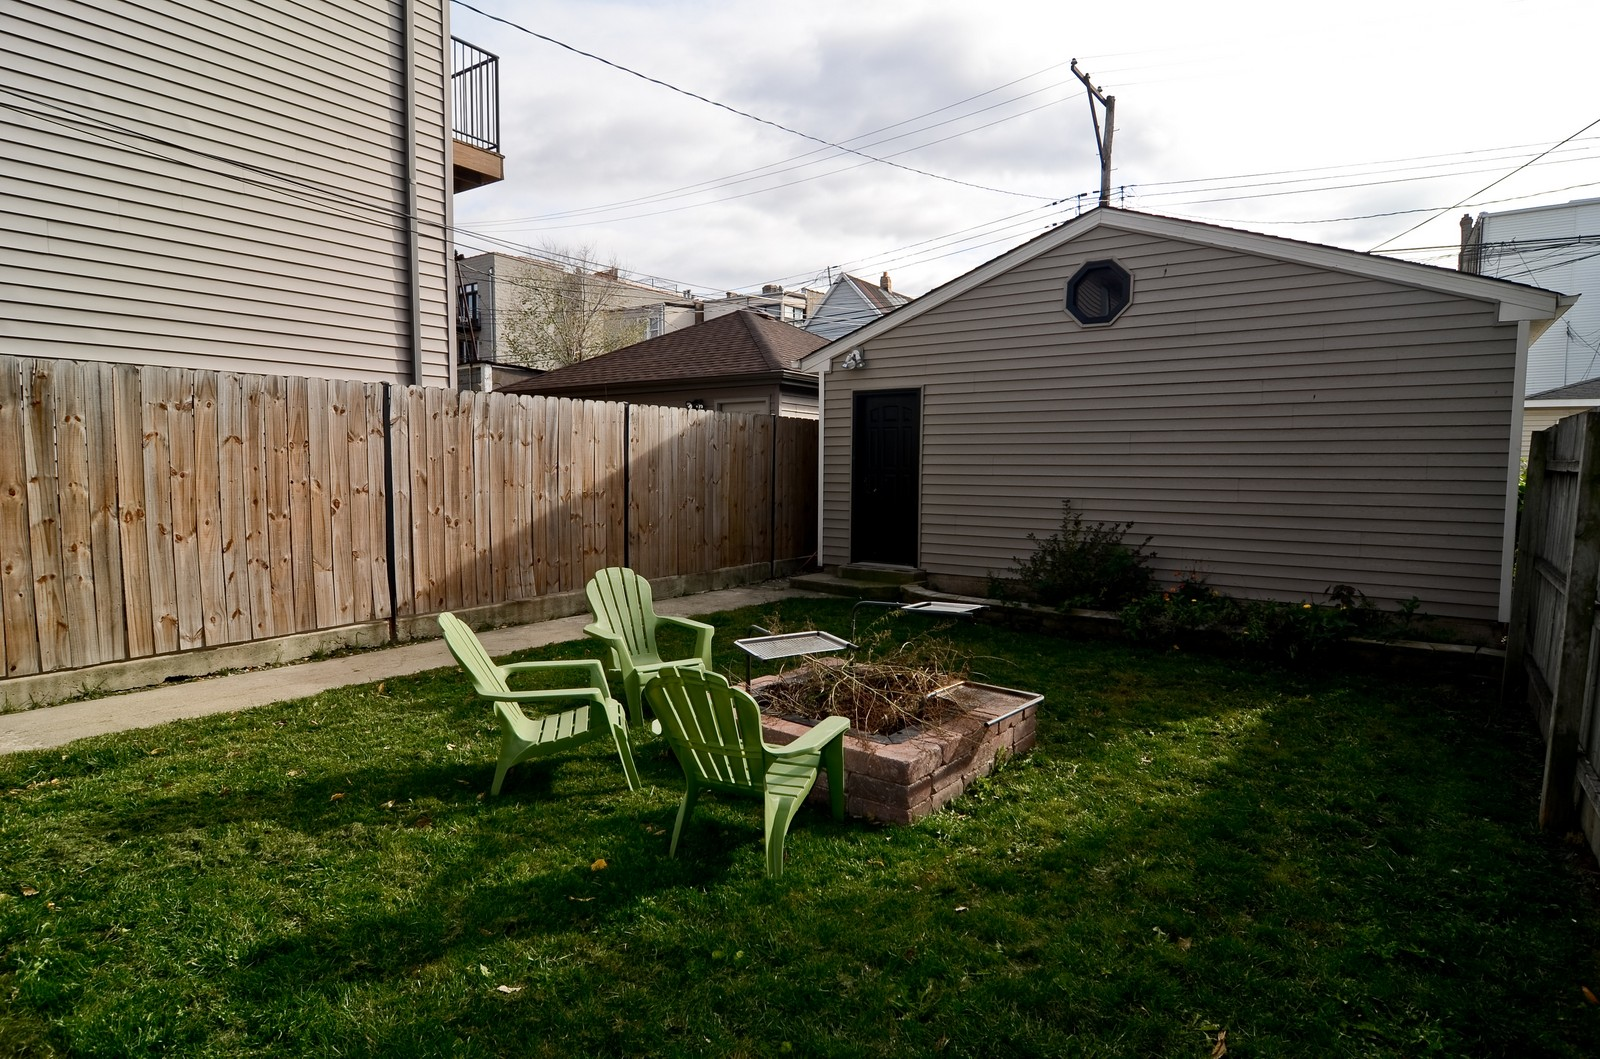 Real Estate Photography - 3525 W Wollfram, Chicago, IL, 60618 - Back Yard